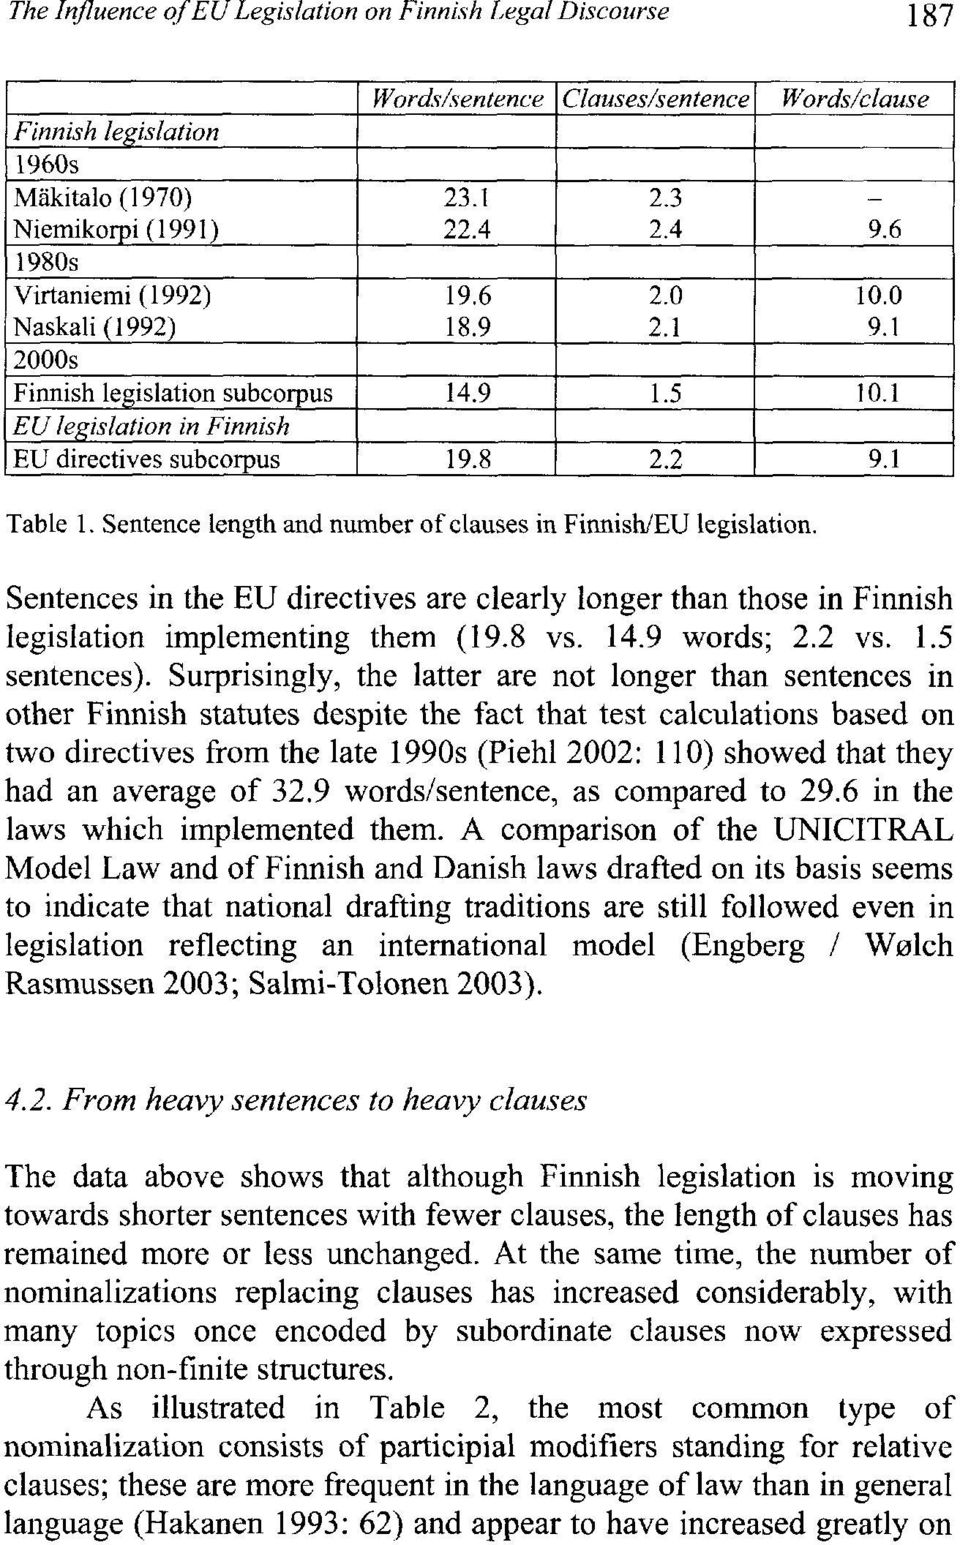 Sentence length and number of clauses in Finnish/EU legislation. Sentences in the EU directives are clearly longer than those in Finnish legislation implementing them (19.8 vs. 14.9 words; 2.2 vs. 1.5 sentences).